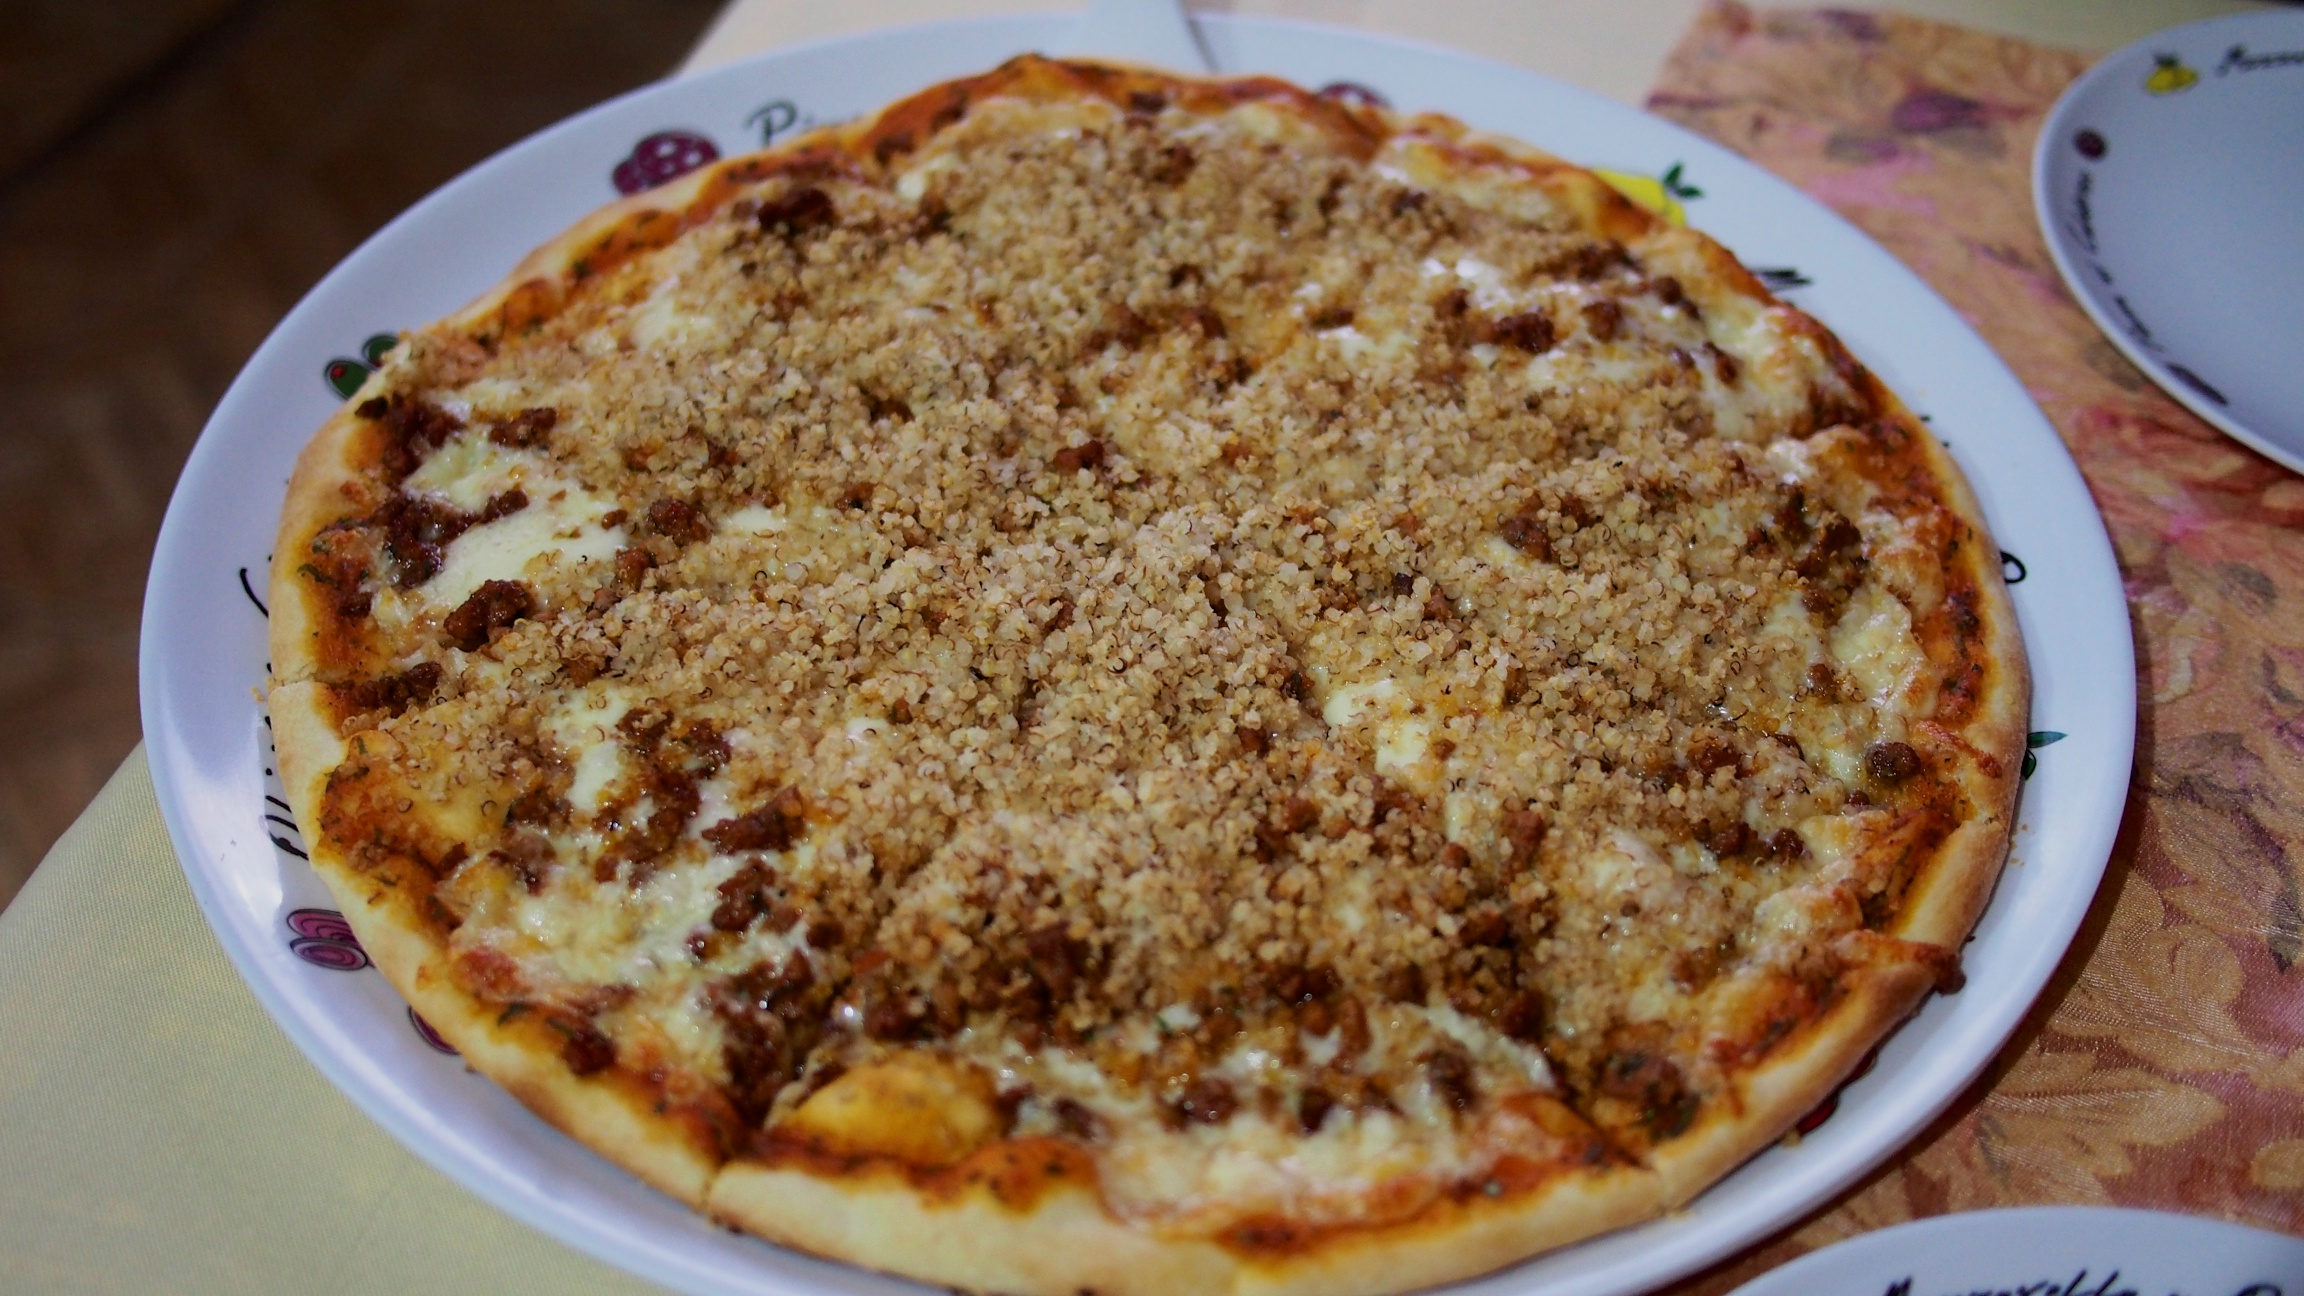 A perfect end to our salt flat tour: a quinoa and alpaca pizza